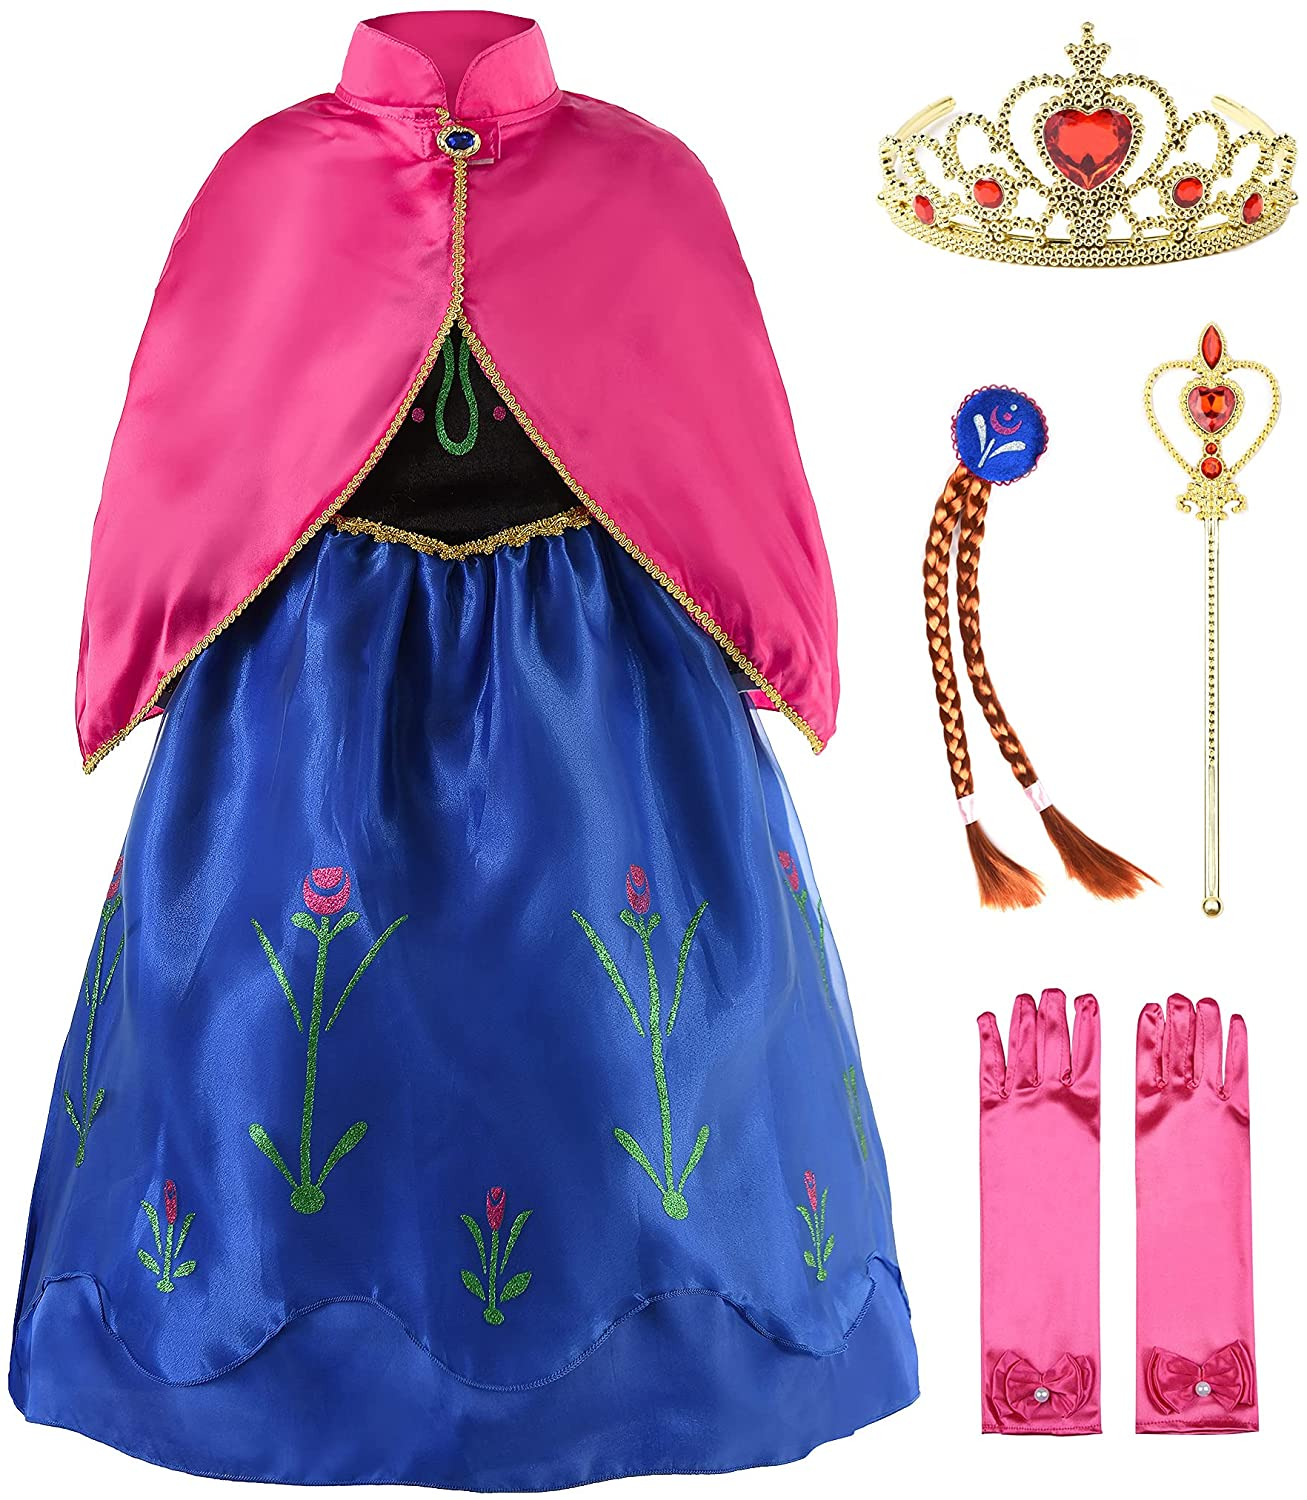 JerrisApparel Princess Snow Party Dress Queen Cosplay Dr Costume High Max 84% OFF quality new